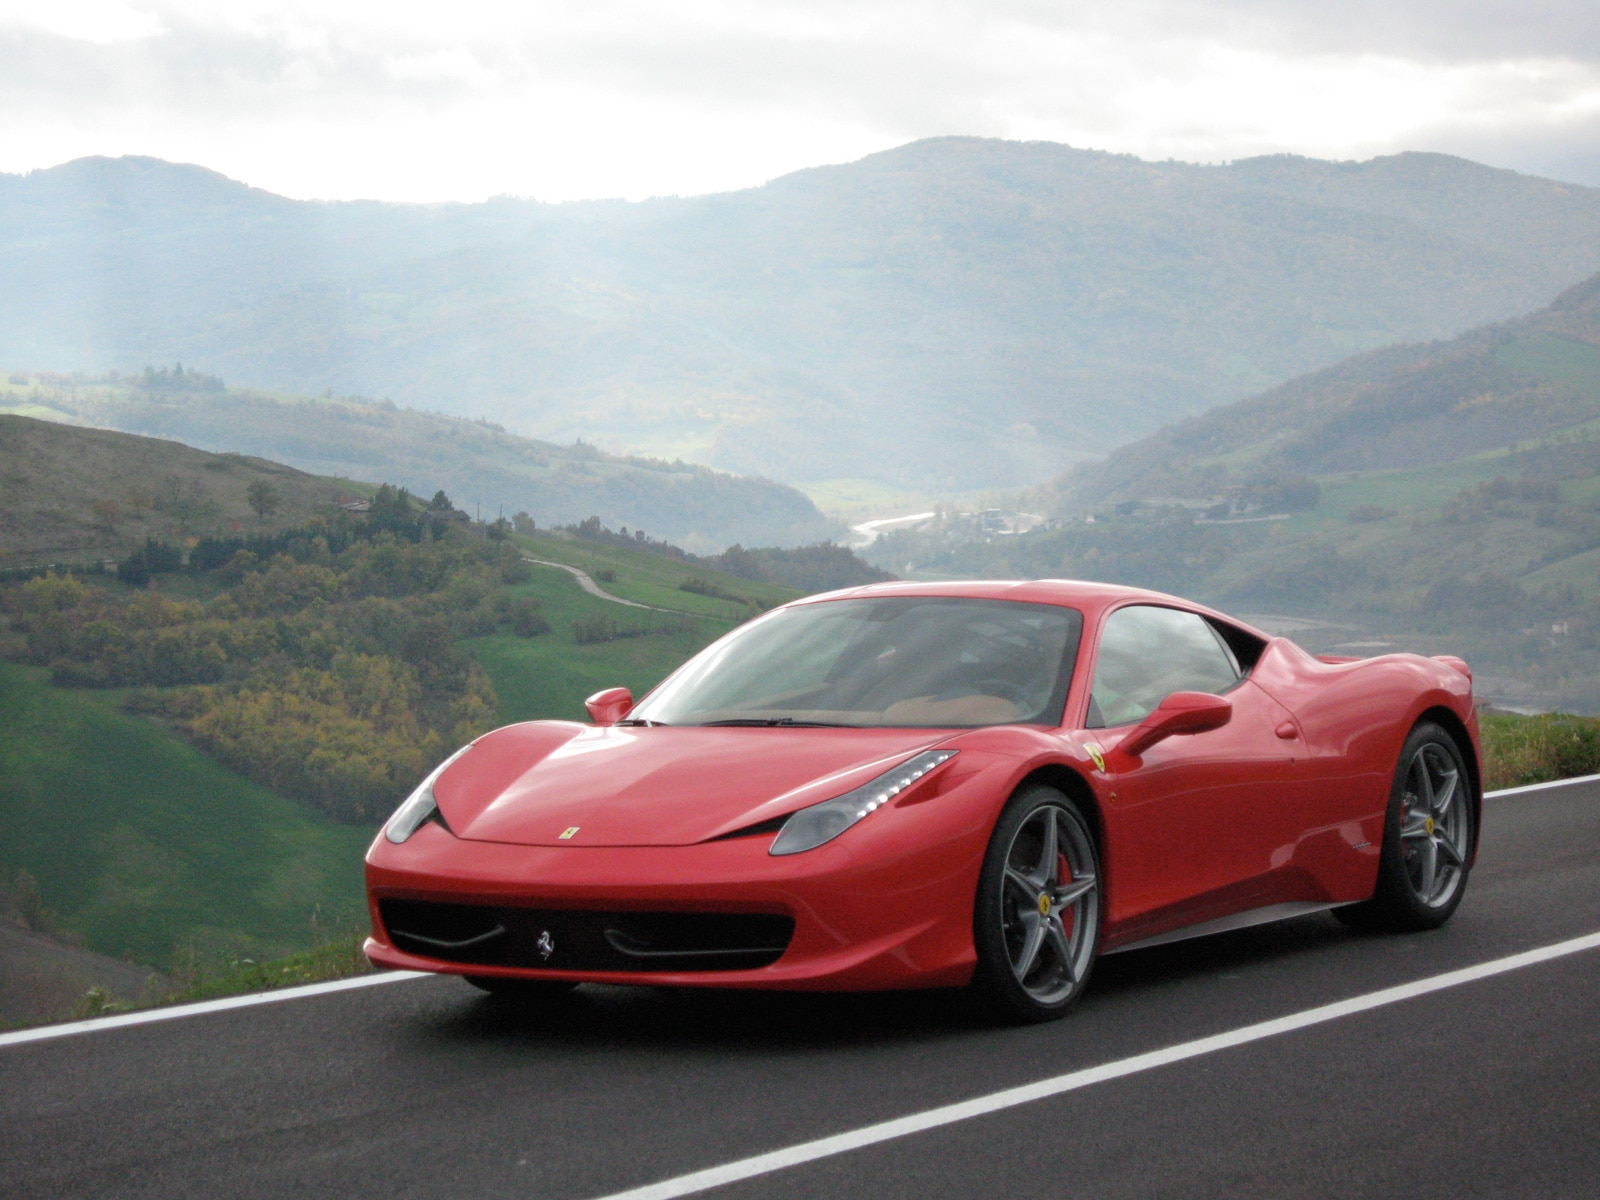 2010 ferrari 458 italia ferrari sport coupe supercar. Black Bedroom Furniture Sets. Home Design Ideas